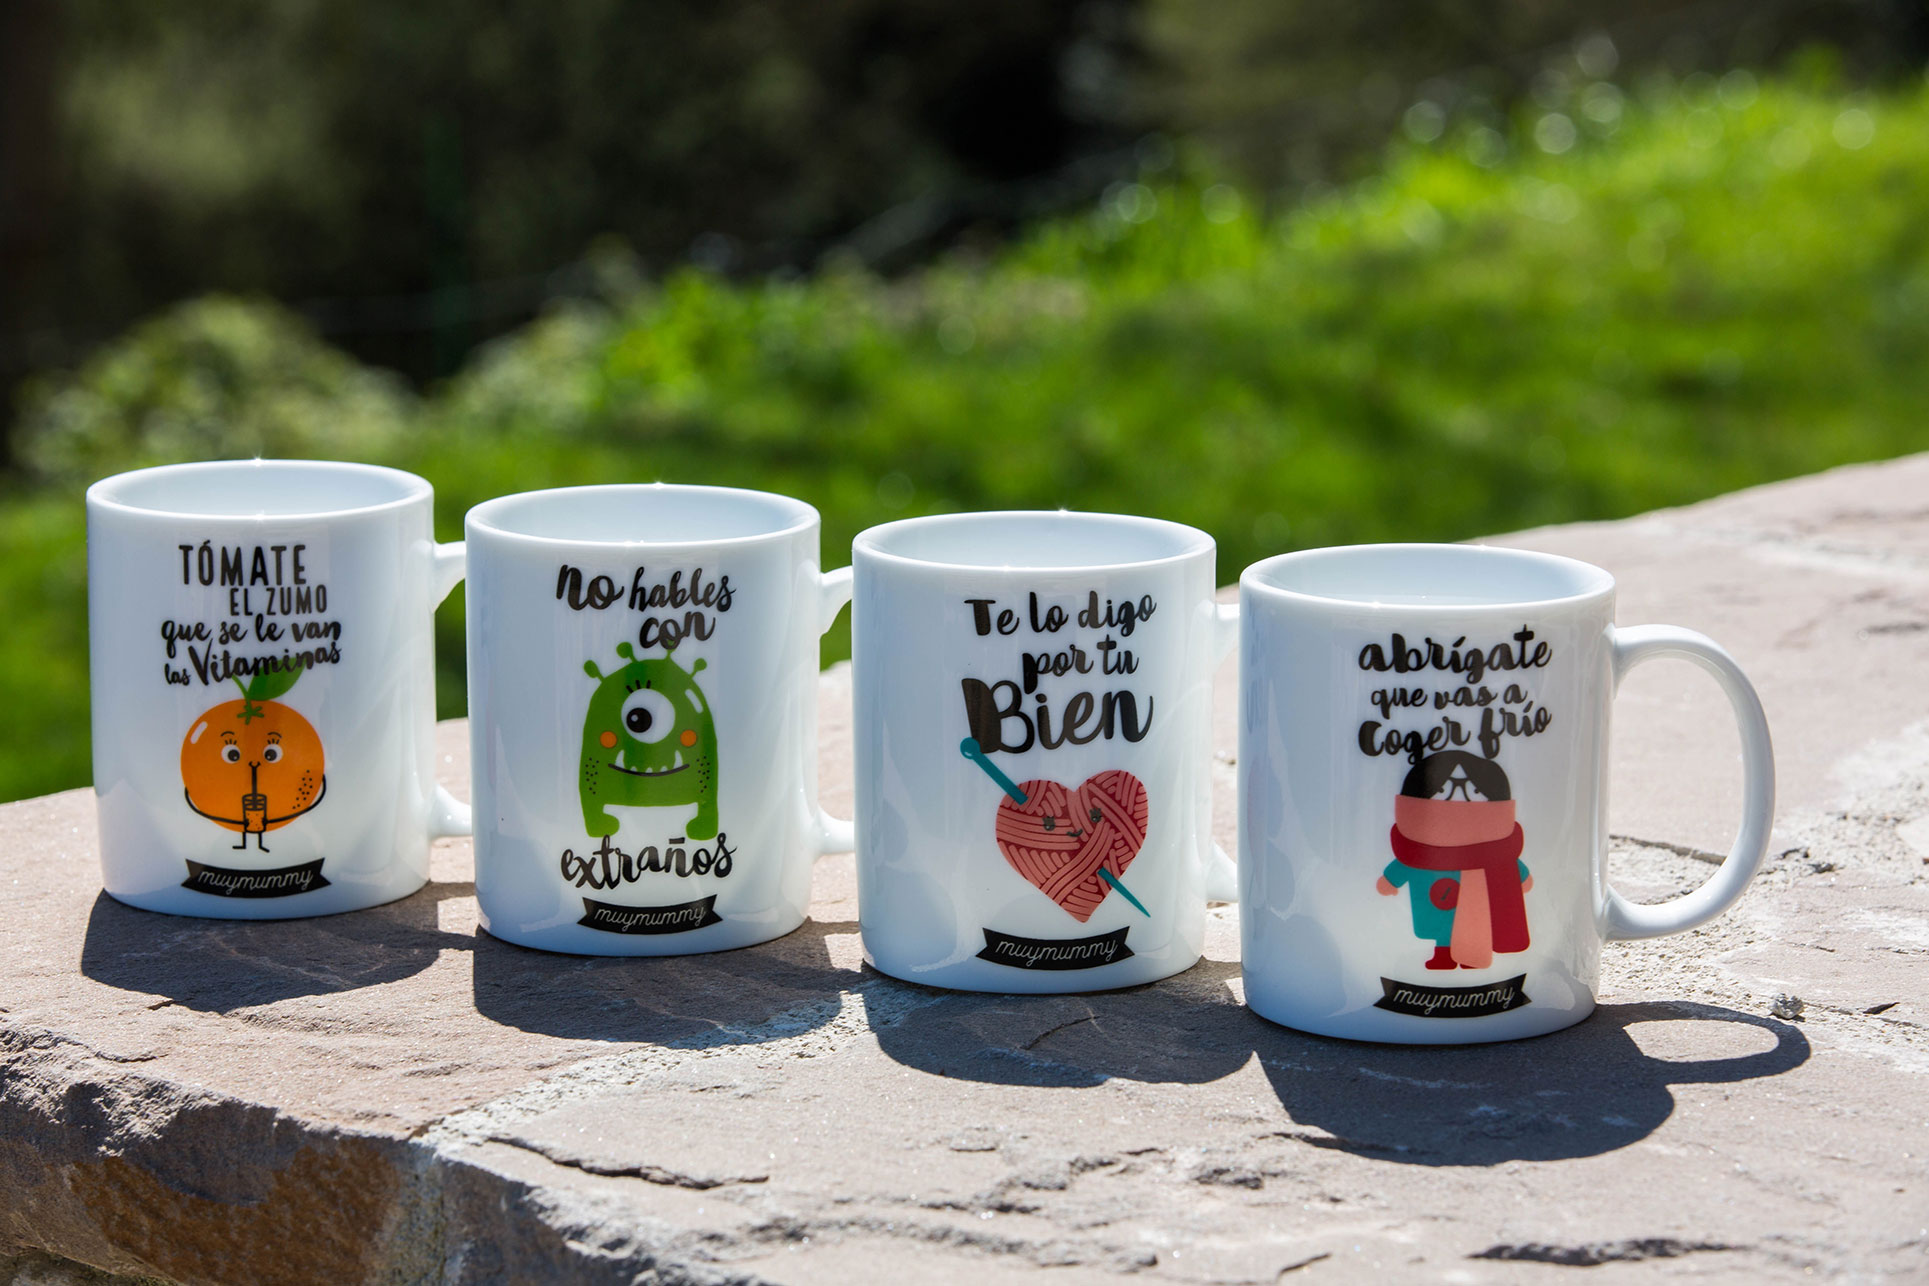 A collection of porcelain mugs with nice and funny imprints